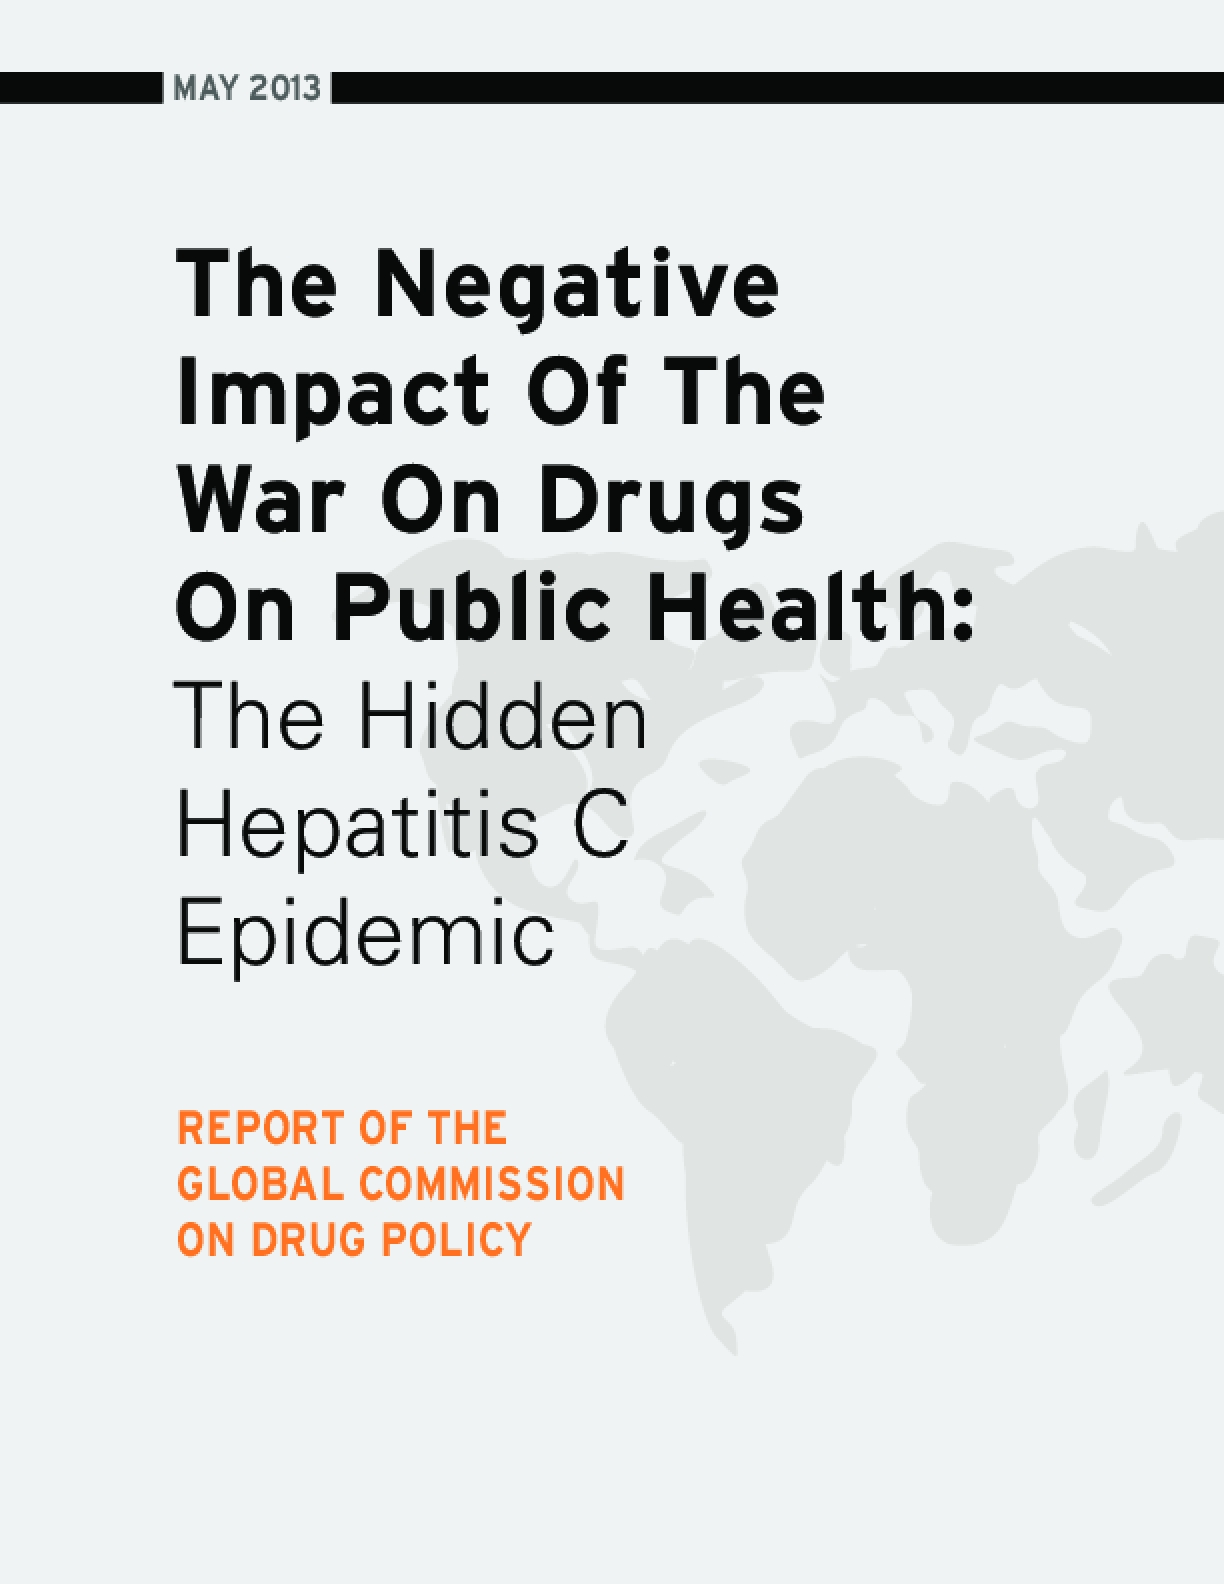 The Global Commission on Drug Policy: The War on Drugs and the Hidden Hepatitis C Epidemic